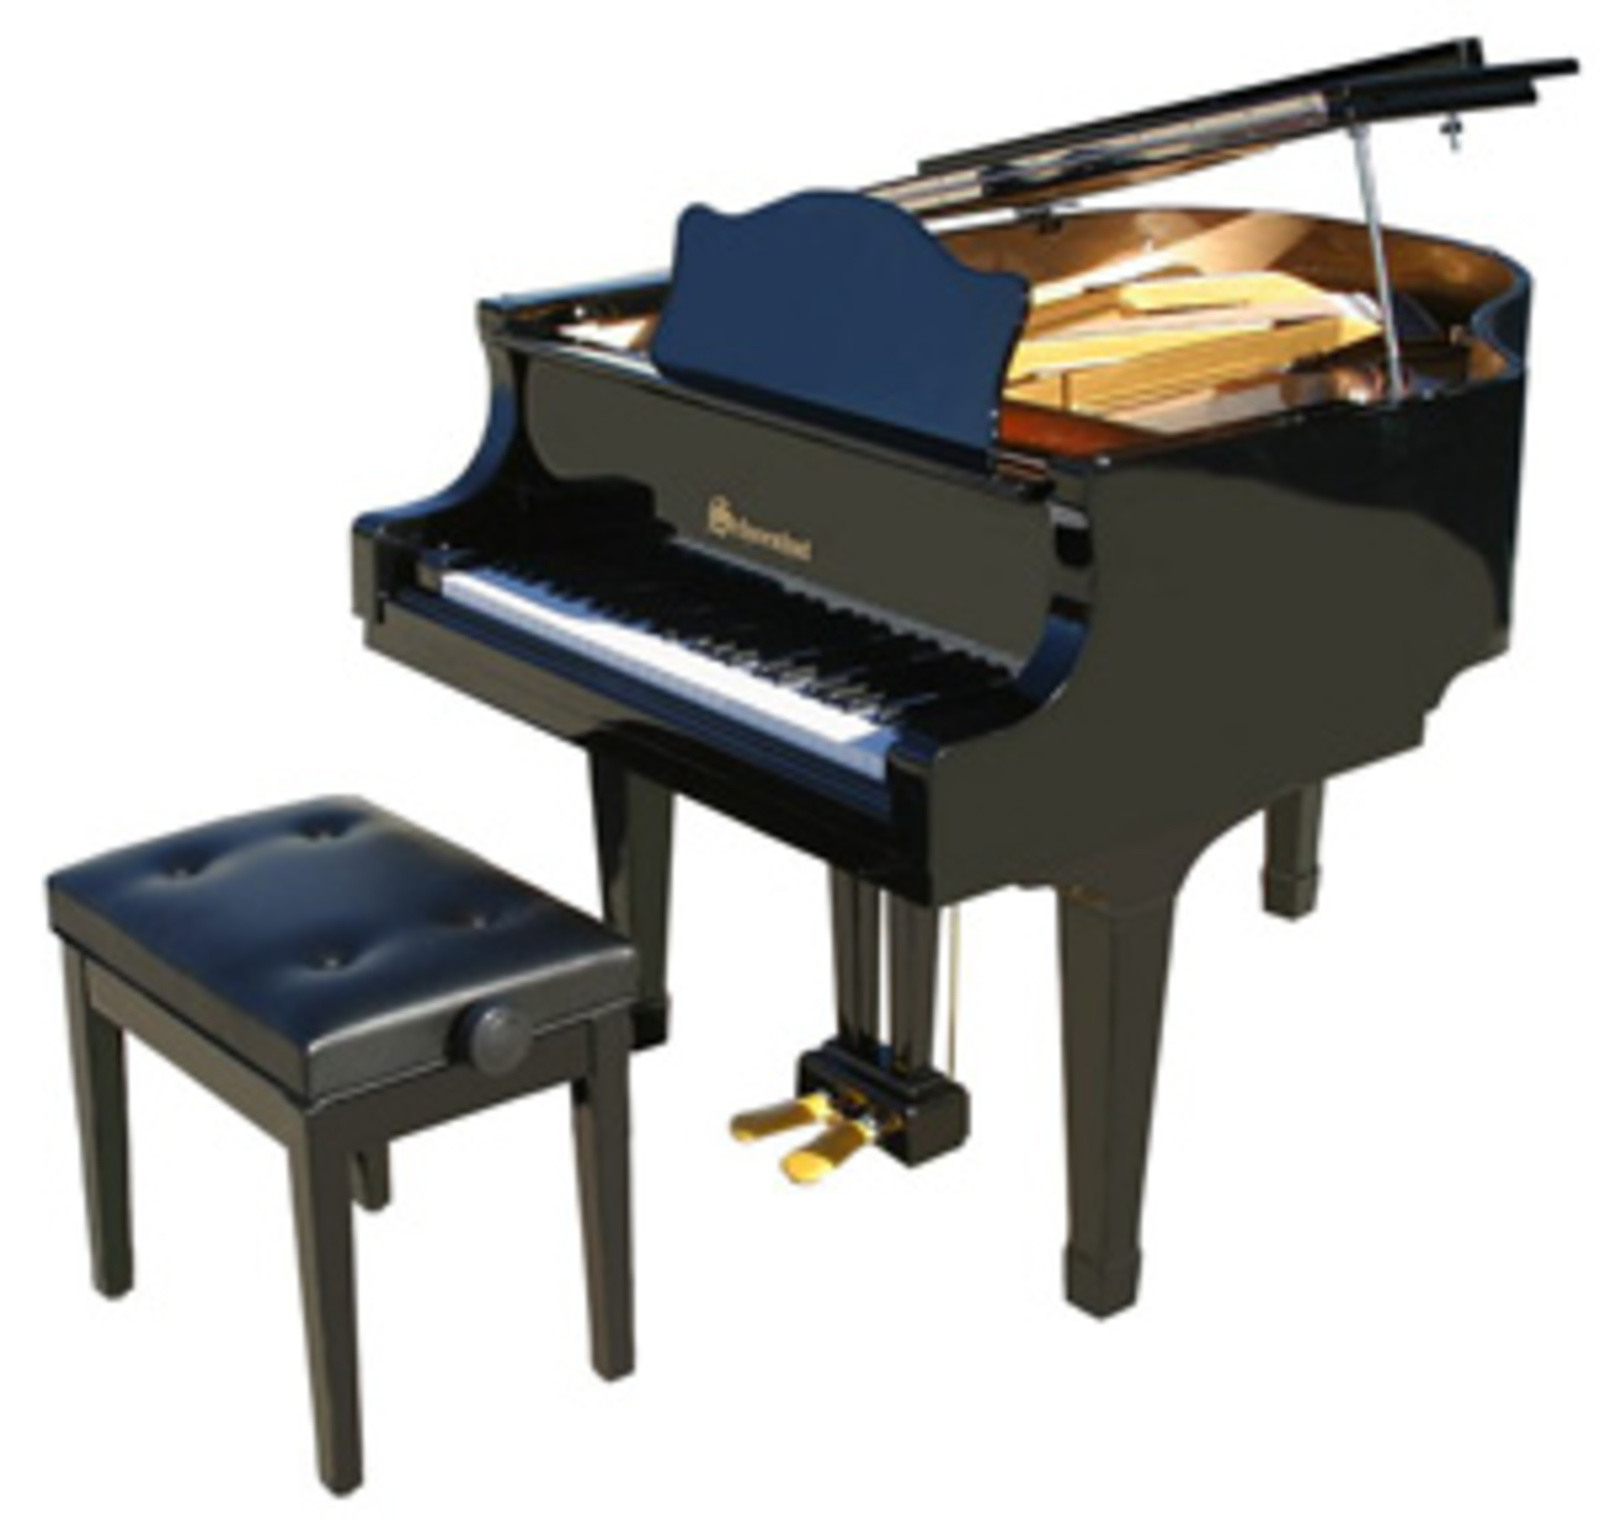 Schoenhut pro baby grand piano cool hunting for What size is a grand piano